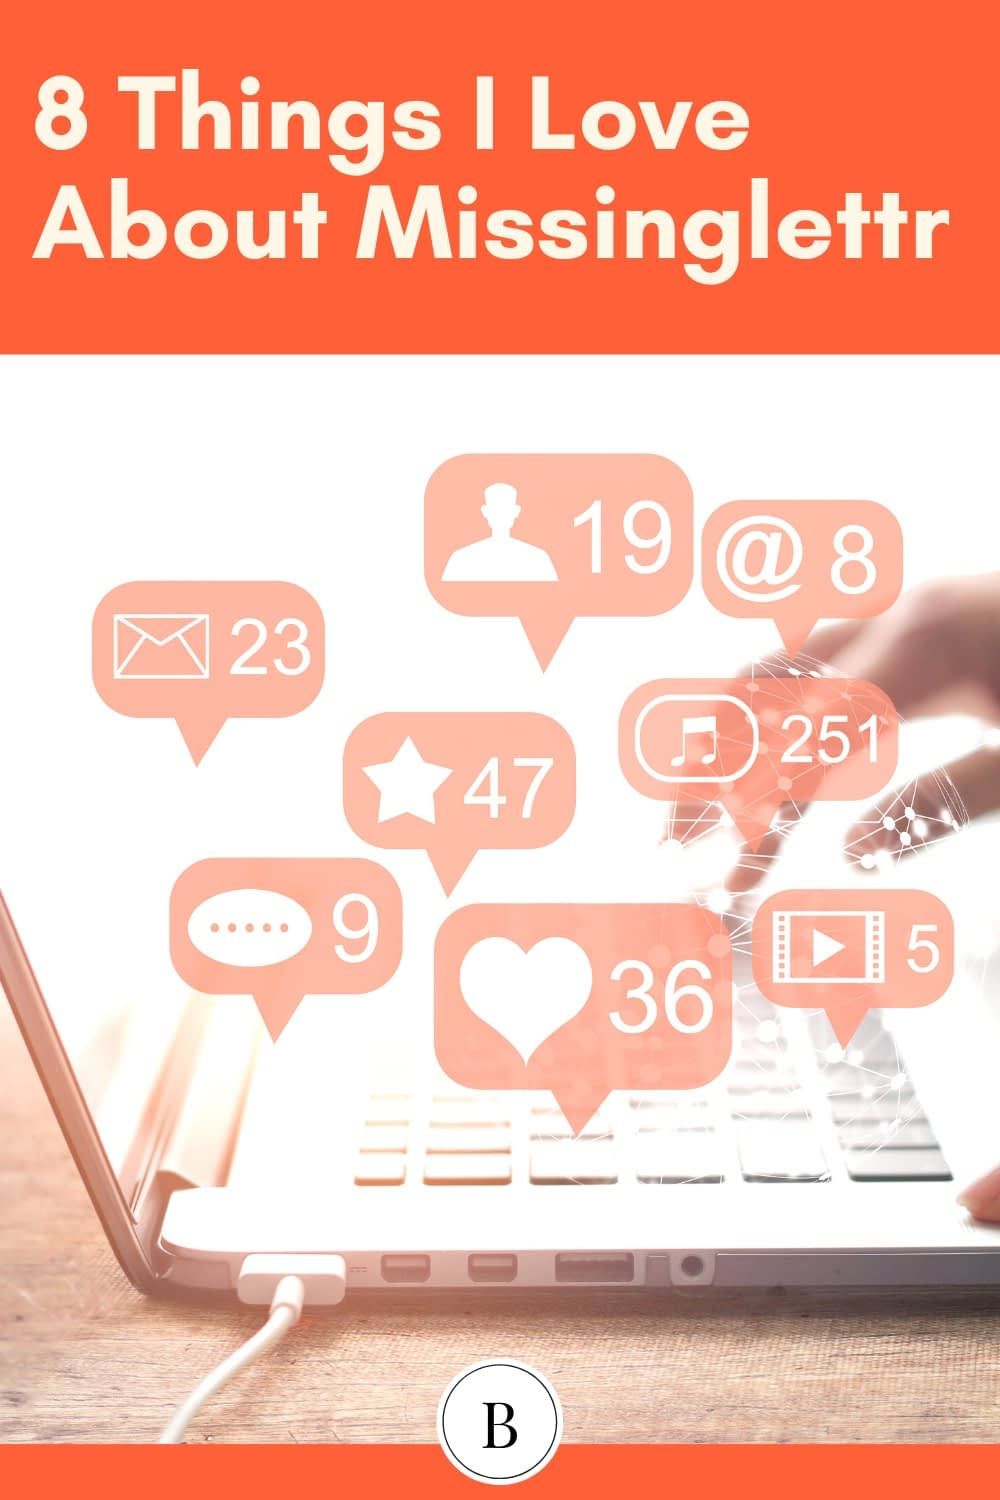 Missinglettr is a social media posting tool that sets multiple messages, images, and links to be distributed to LinkedIn, Facebook and Twitter throughout the year automatically after you set it once. Here are 10 things I love about Missinglettr.